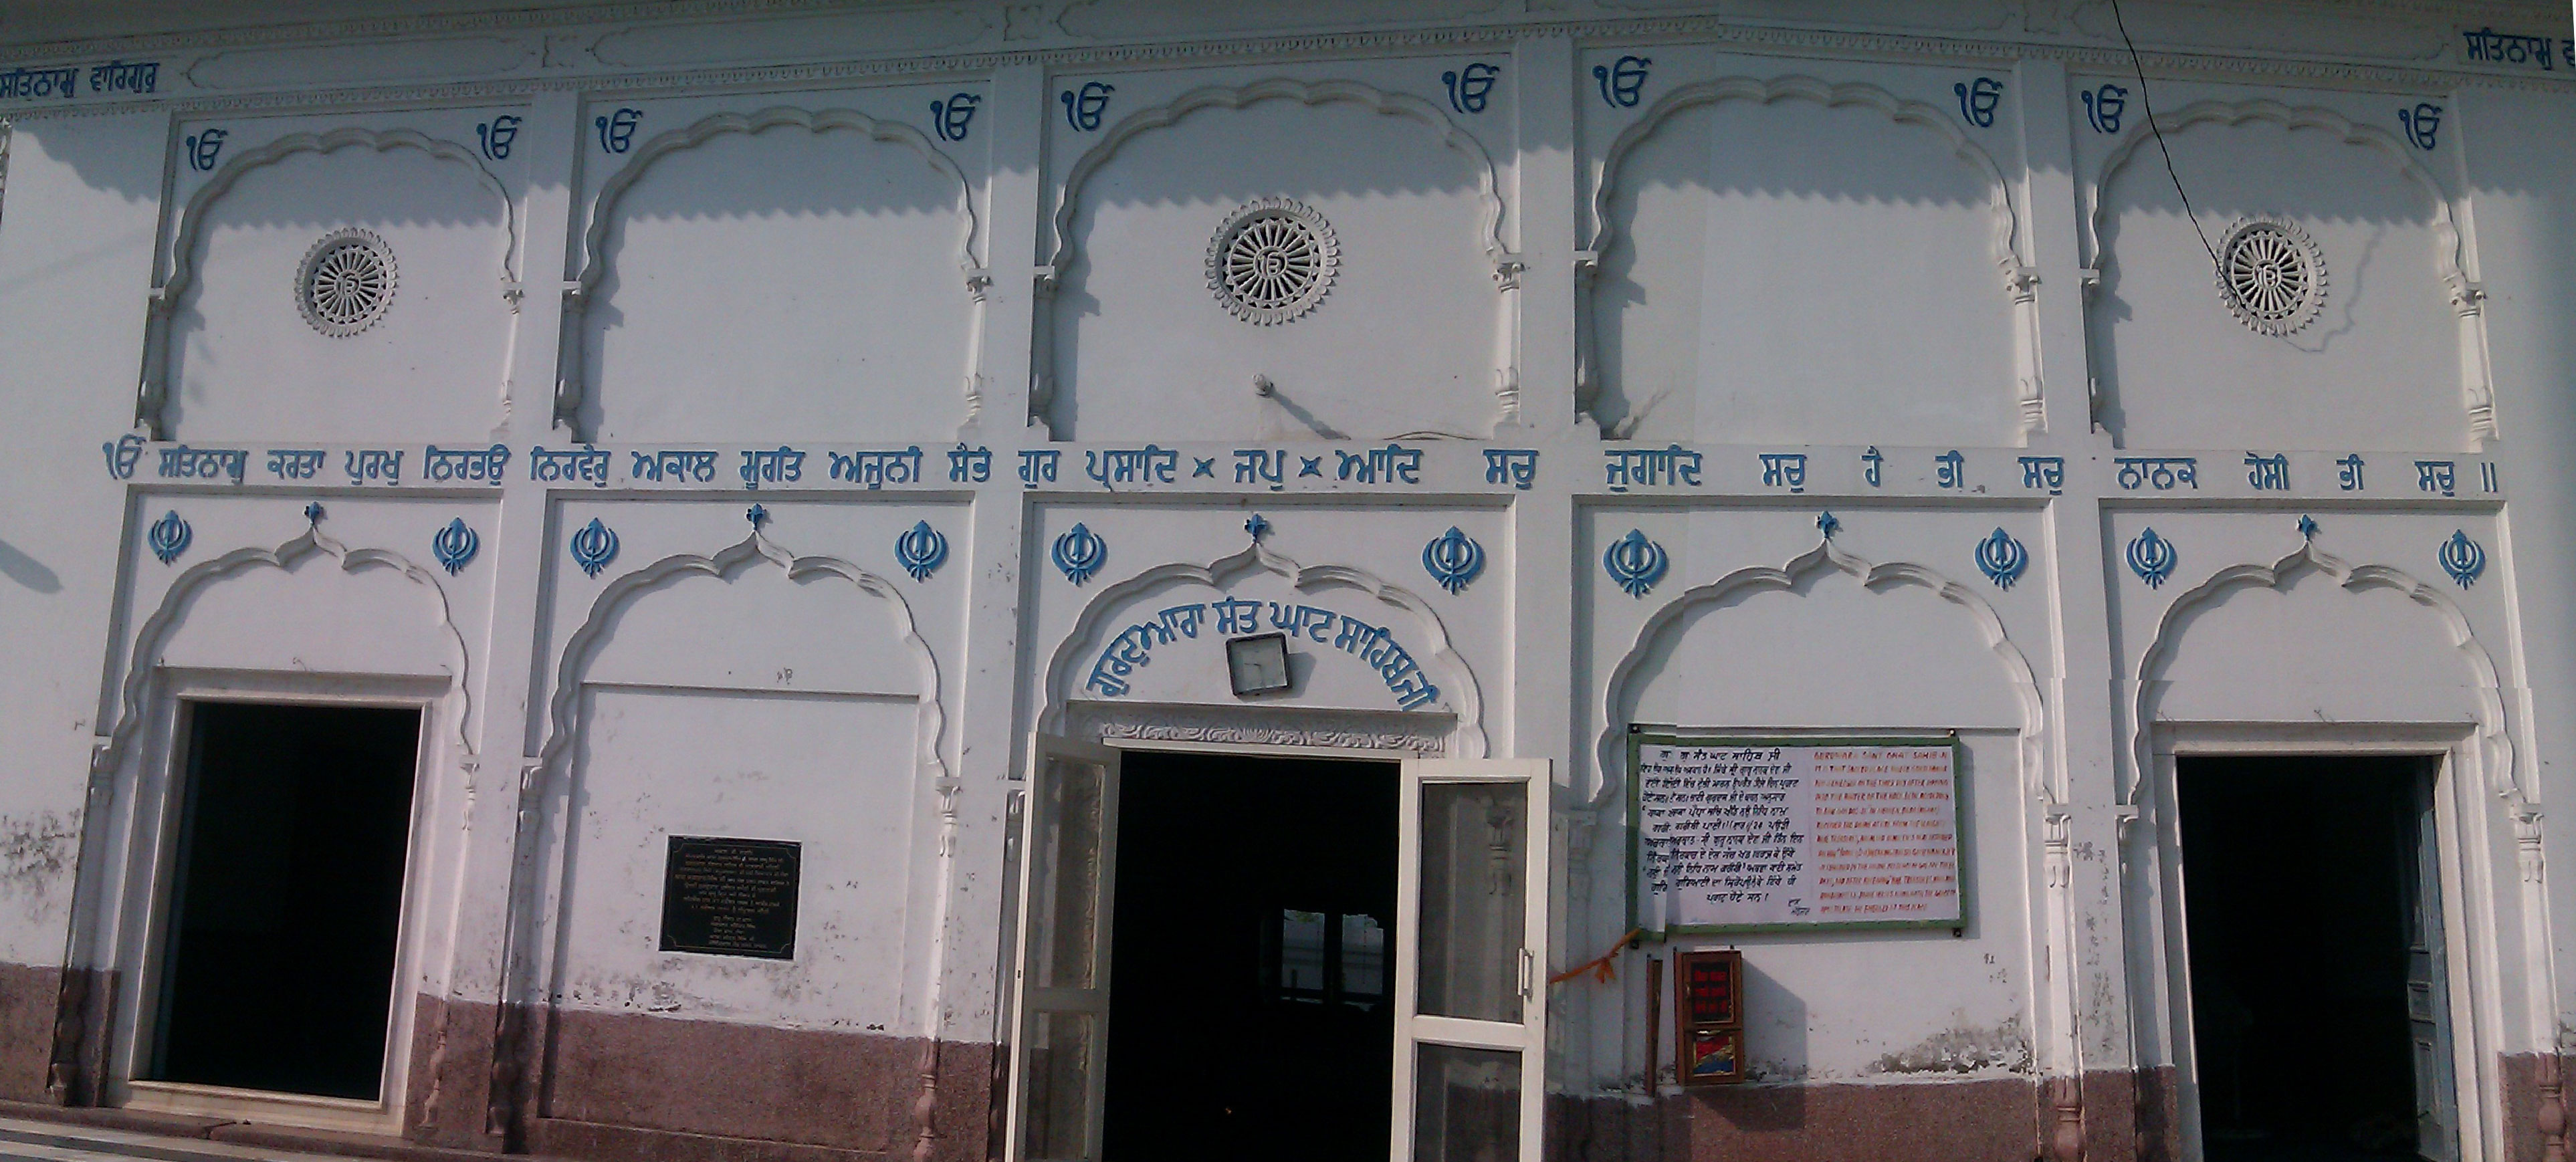 Mool Mantar engraved                                       on front of historic Gurudwara Sant Ghat near Bein river